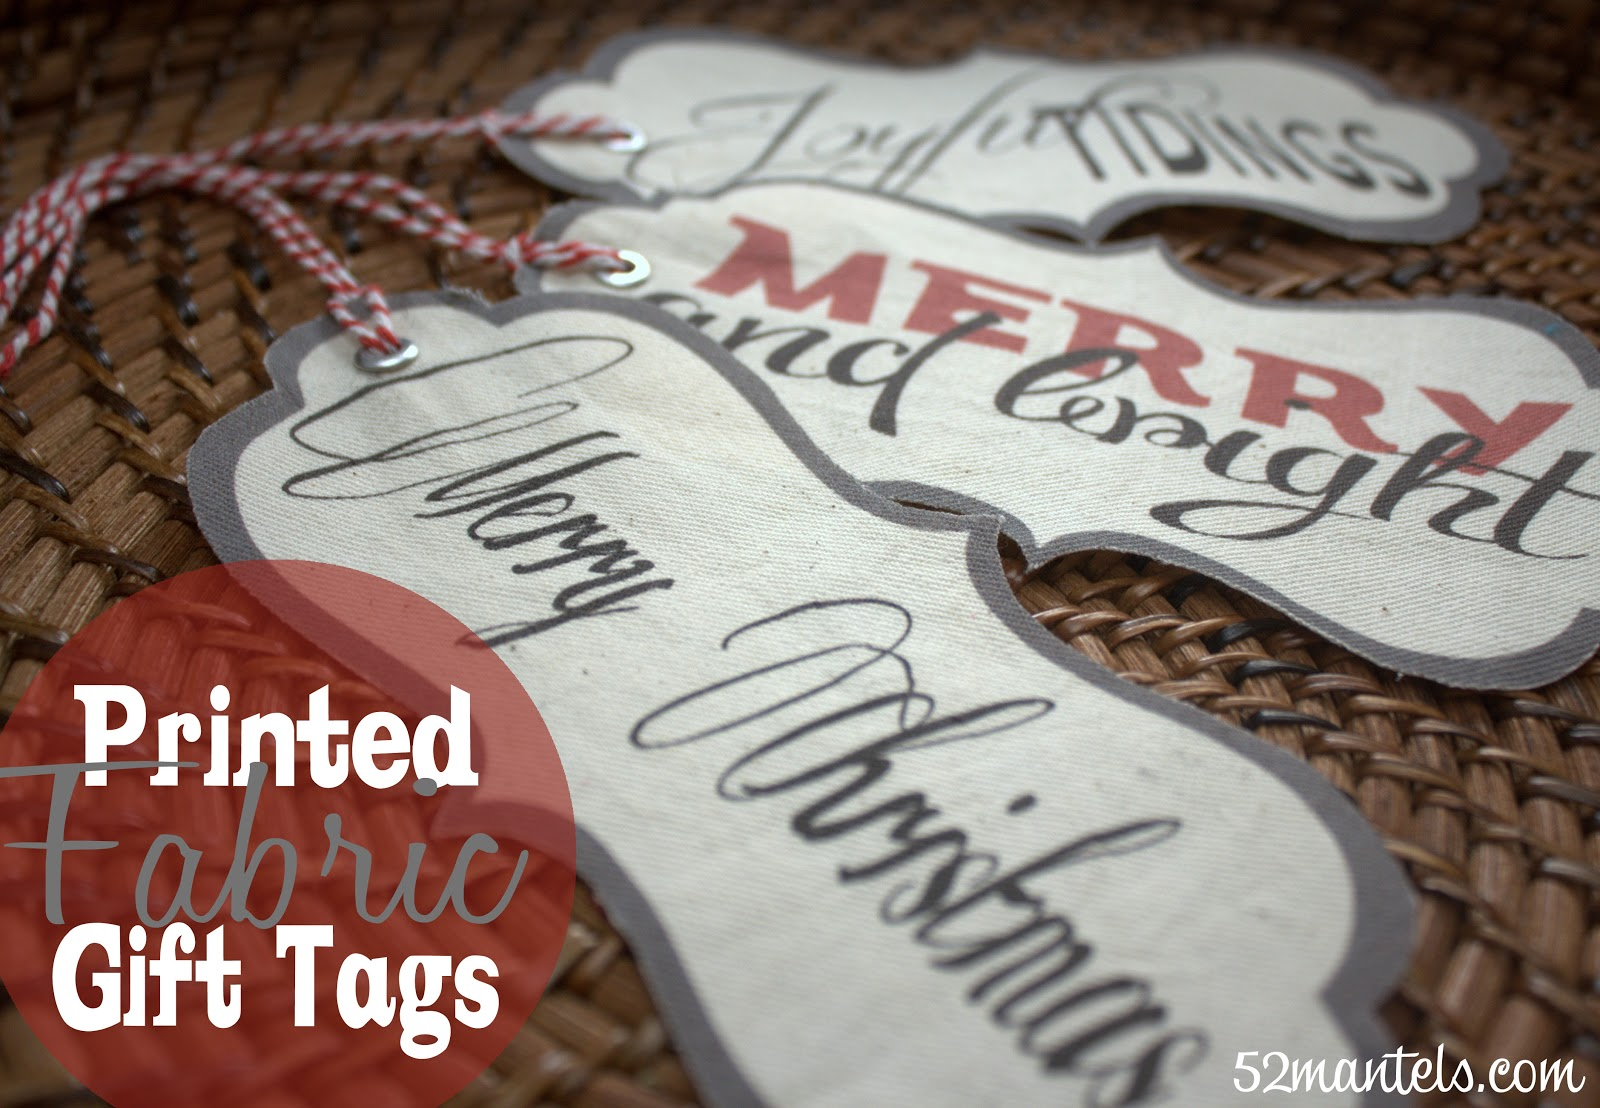 Holiday Project -- Printed Fabric Gift Tags